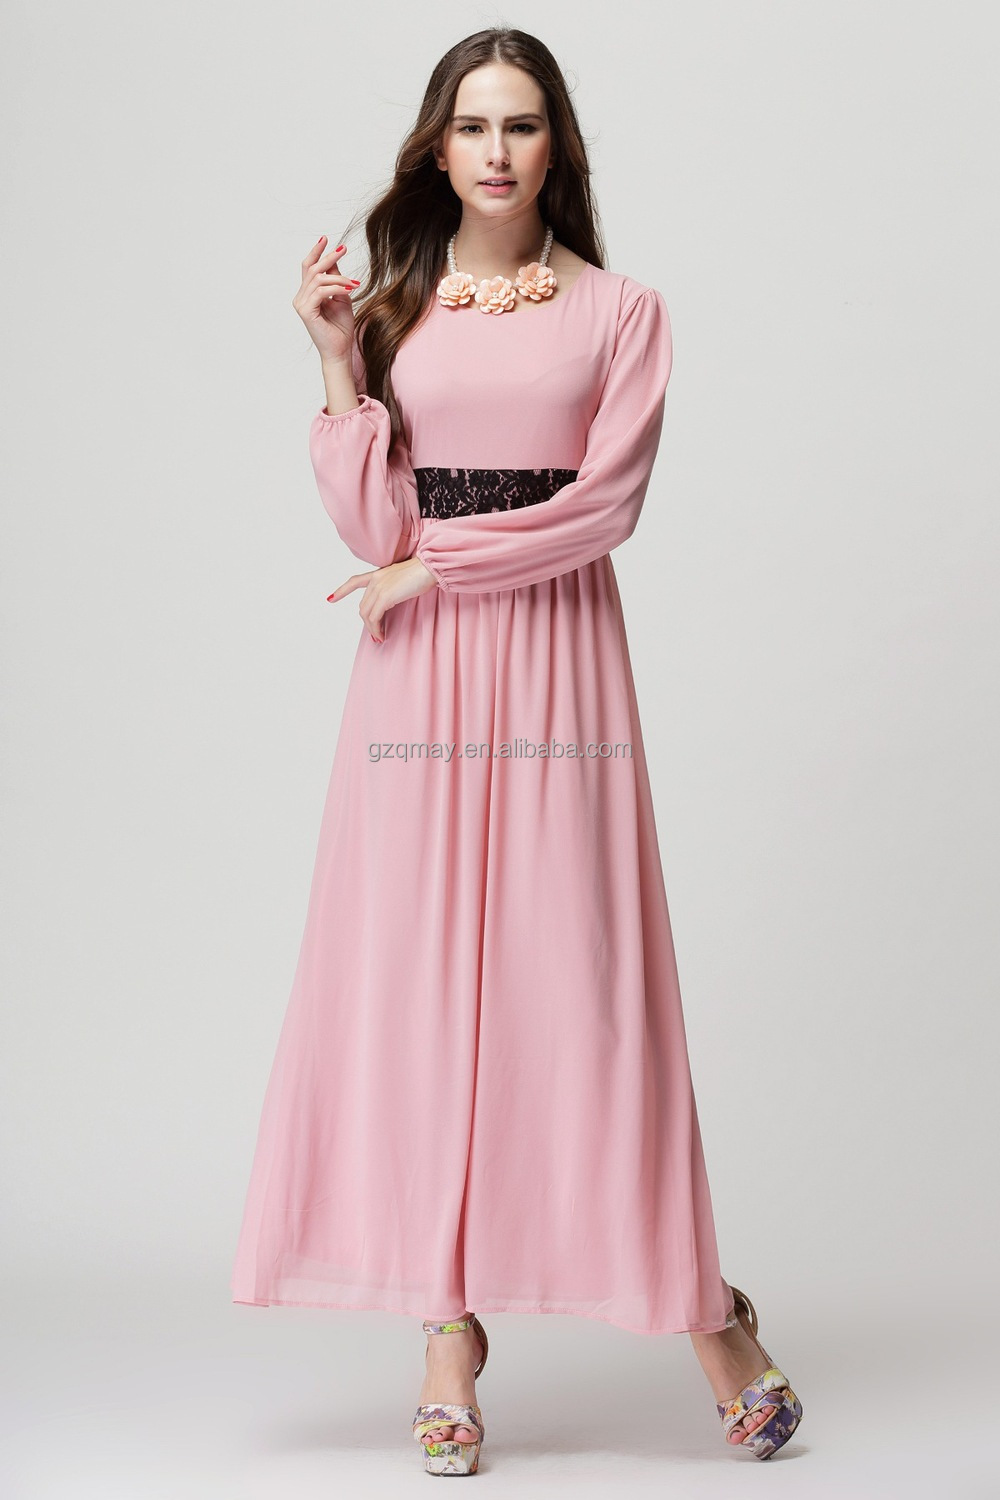 Ladies Church Dress Fashion Formal Mature Dress Indian Style ...